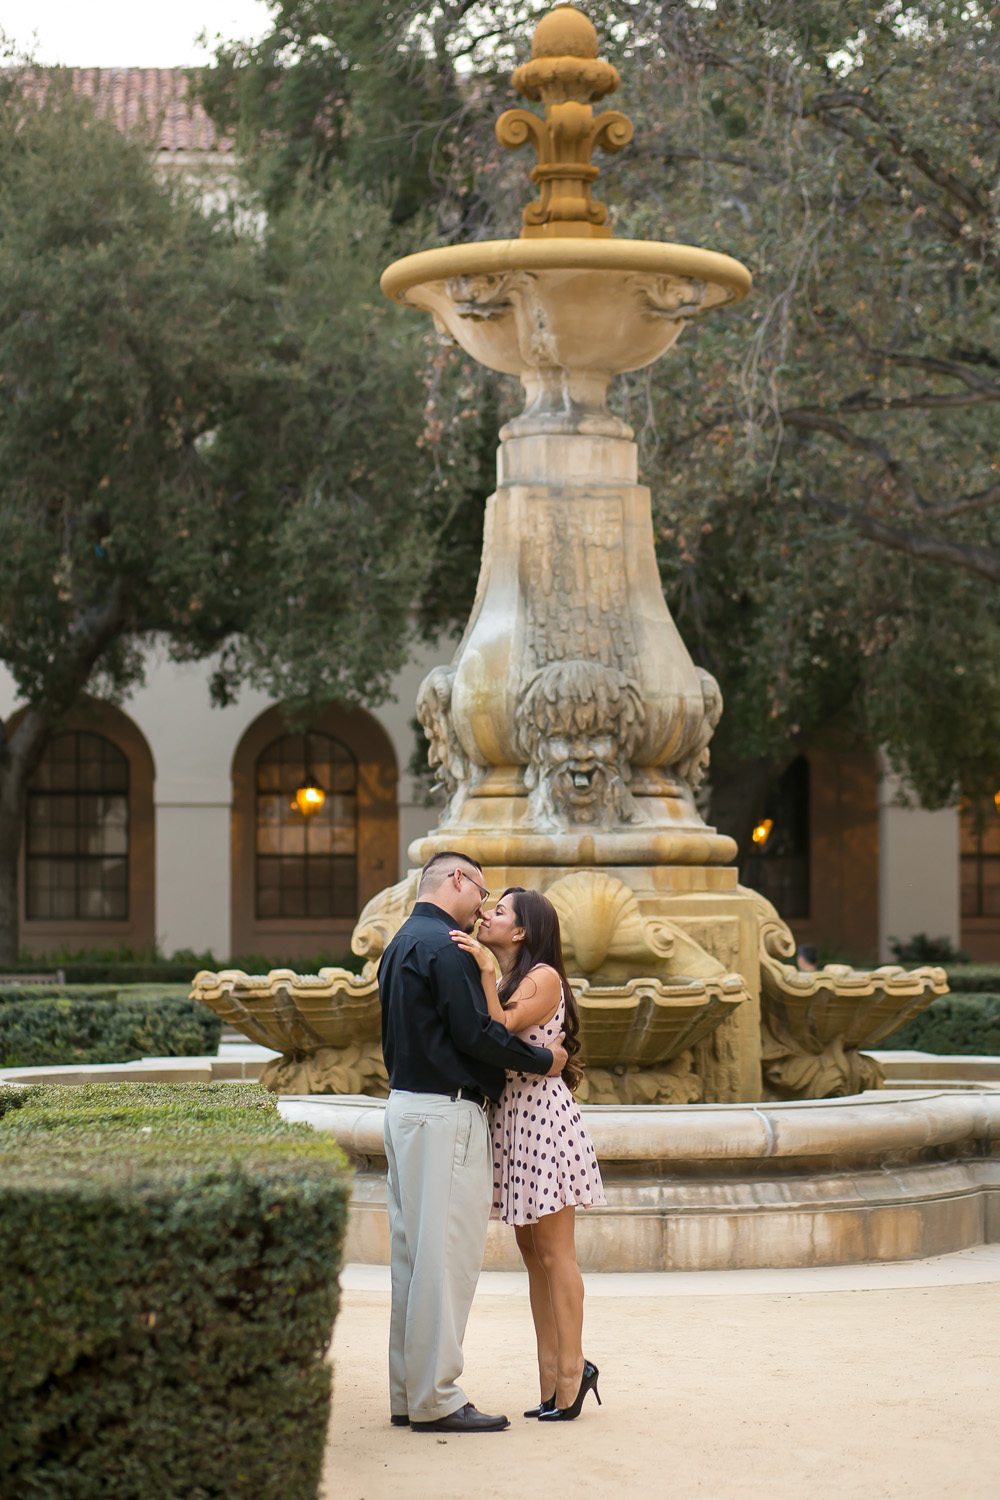 pasadena city hall, engagement session, love, engaged, fiance, water fountain, park bench, chris holt photography, los angeles wedding photography